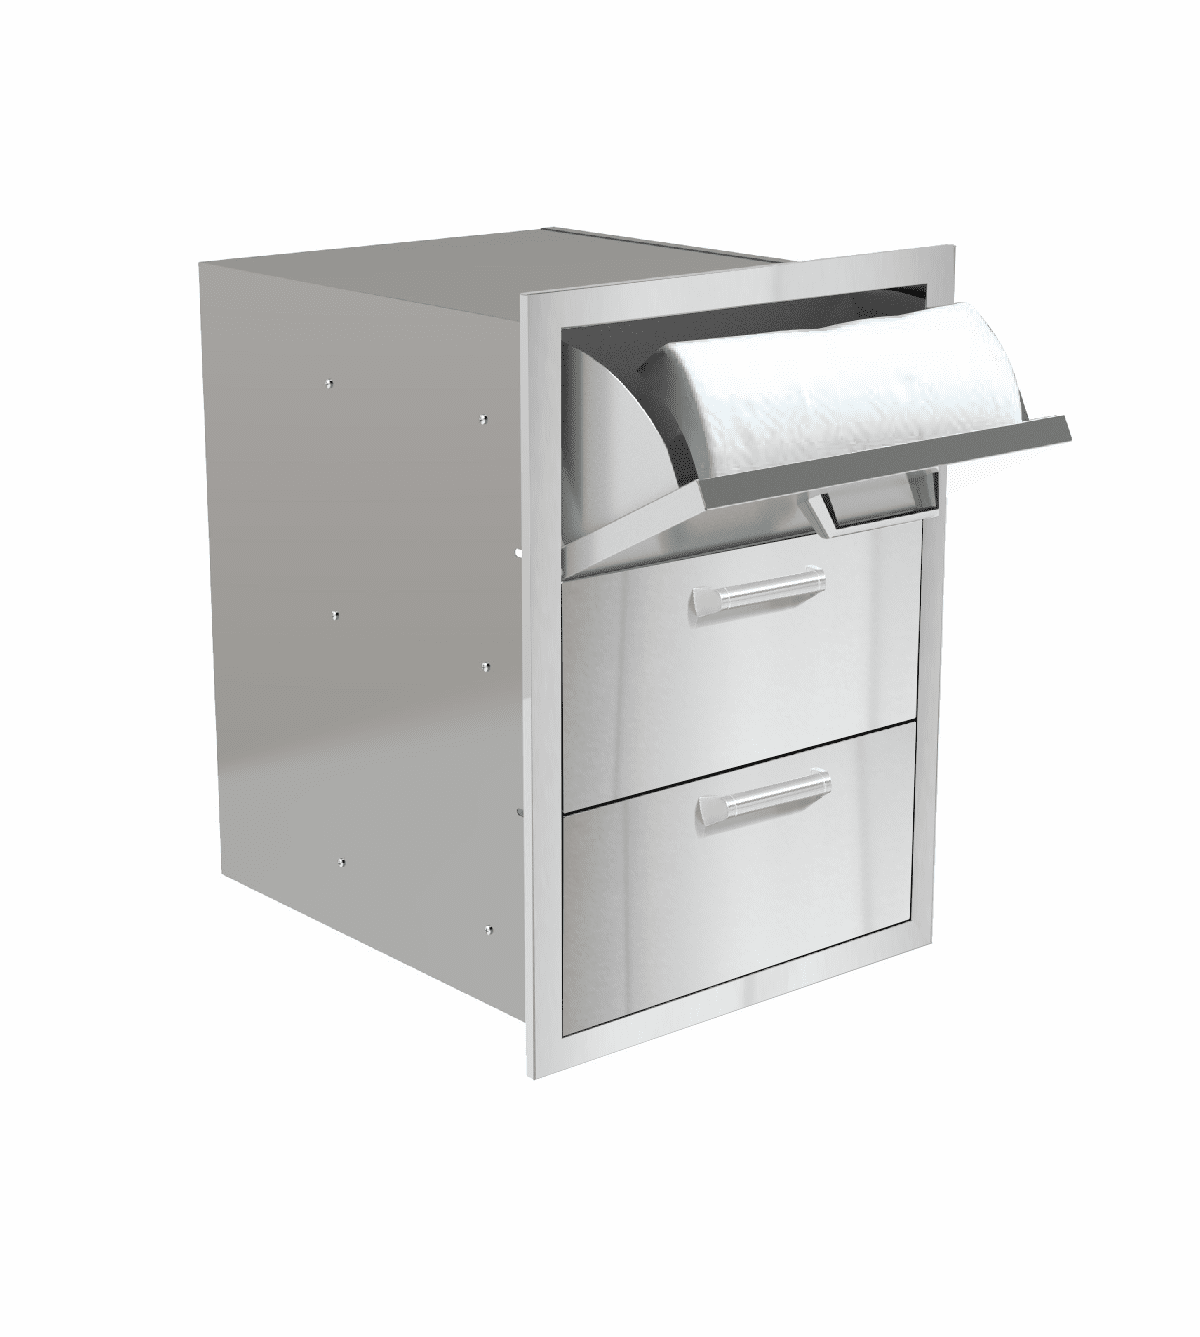 PCM 350H Series BBQ Drawer - 16 Inch 3-Drawer with Paper Towel Drawer